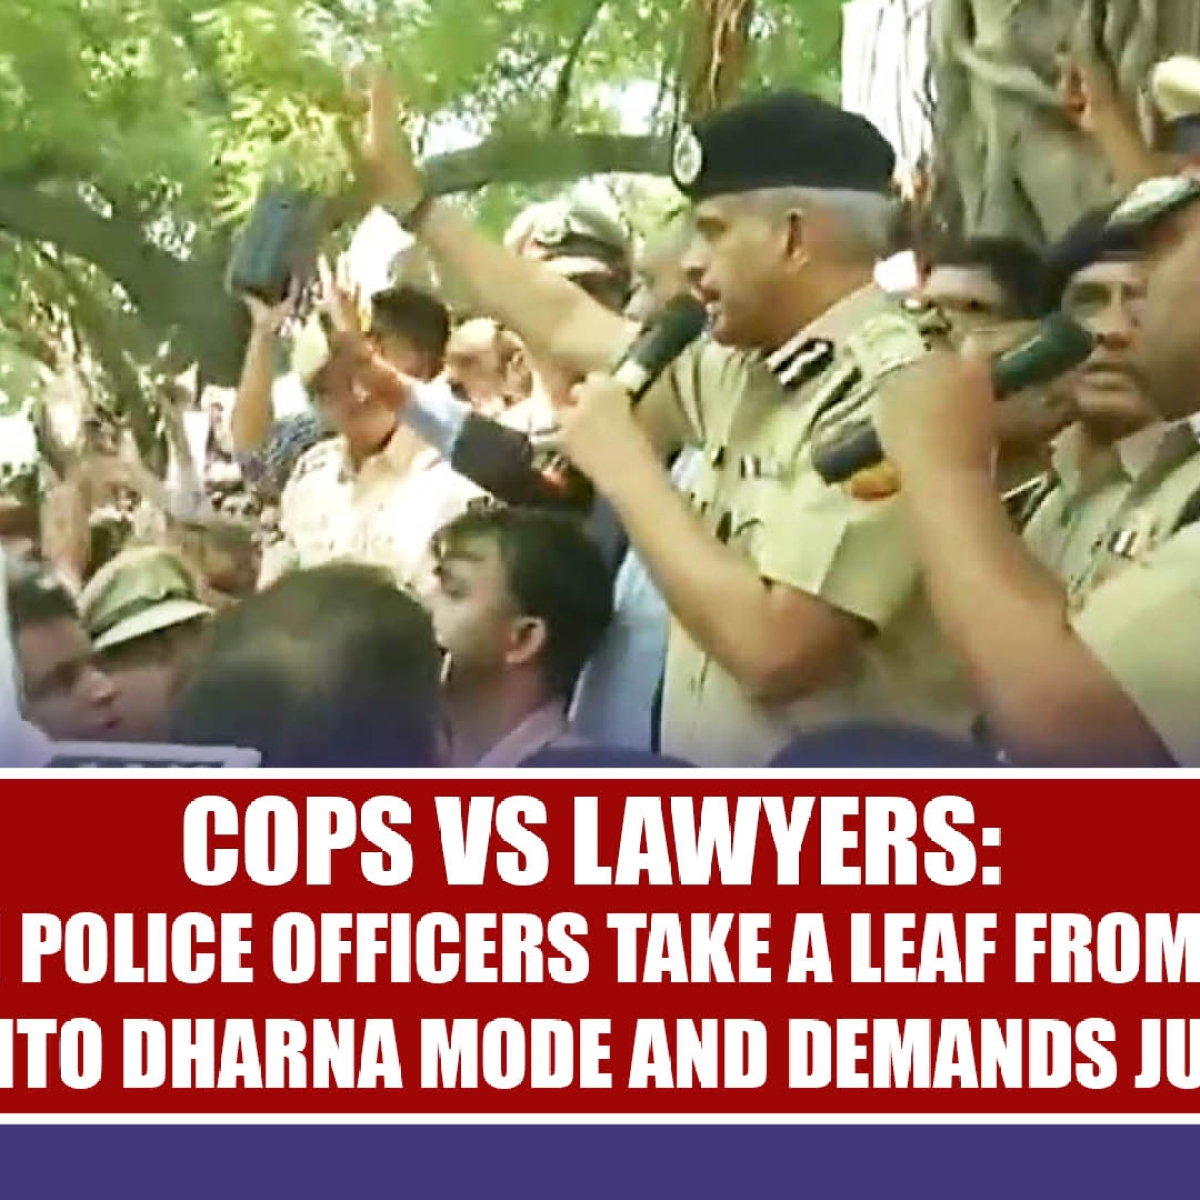 Cops vs Lawyers: Delhi Police Officers Take A Leaf From CM, Goes Into Dharna Mode And Demands Justice